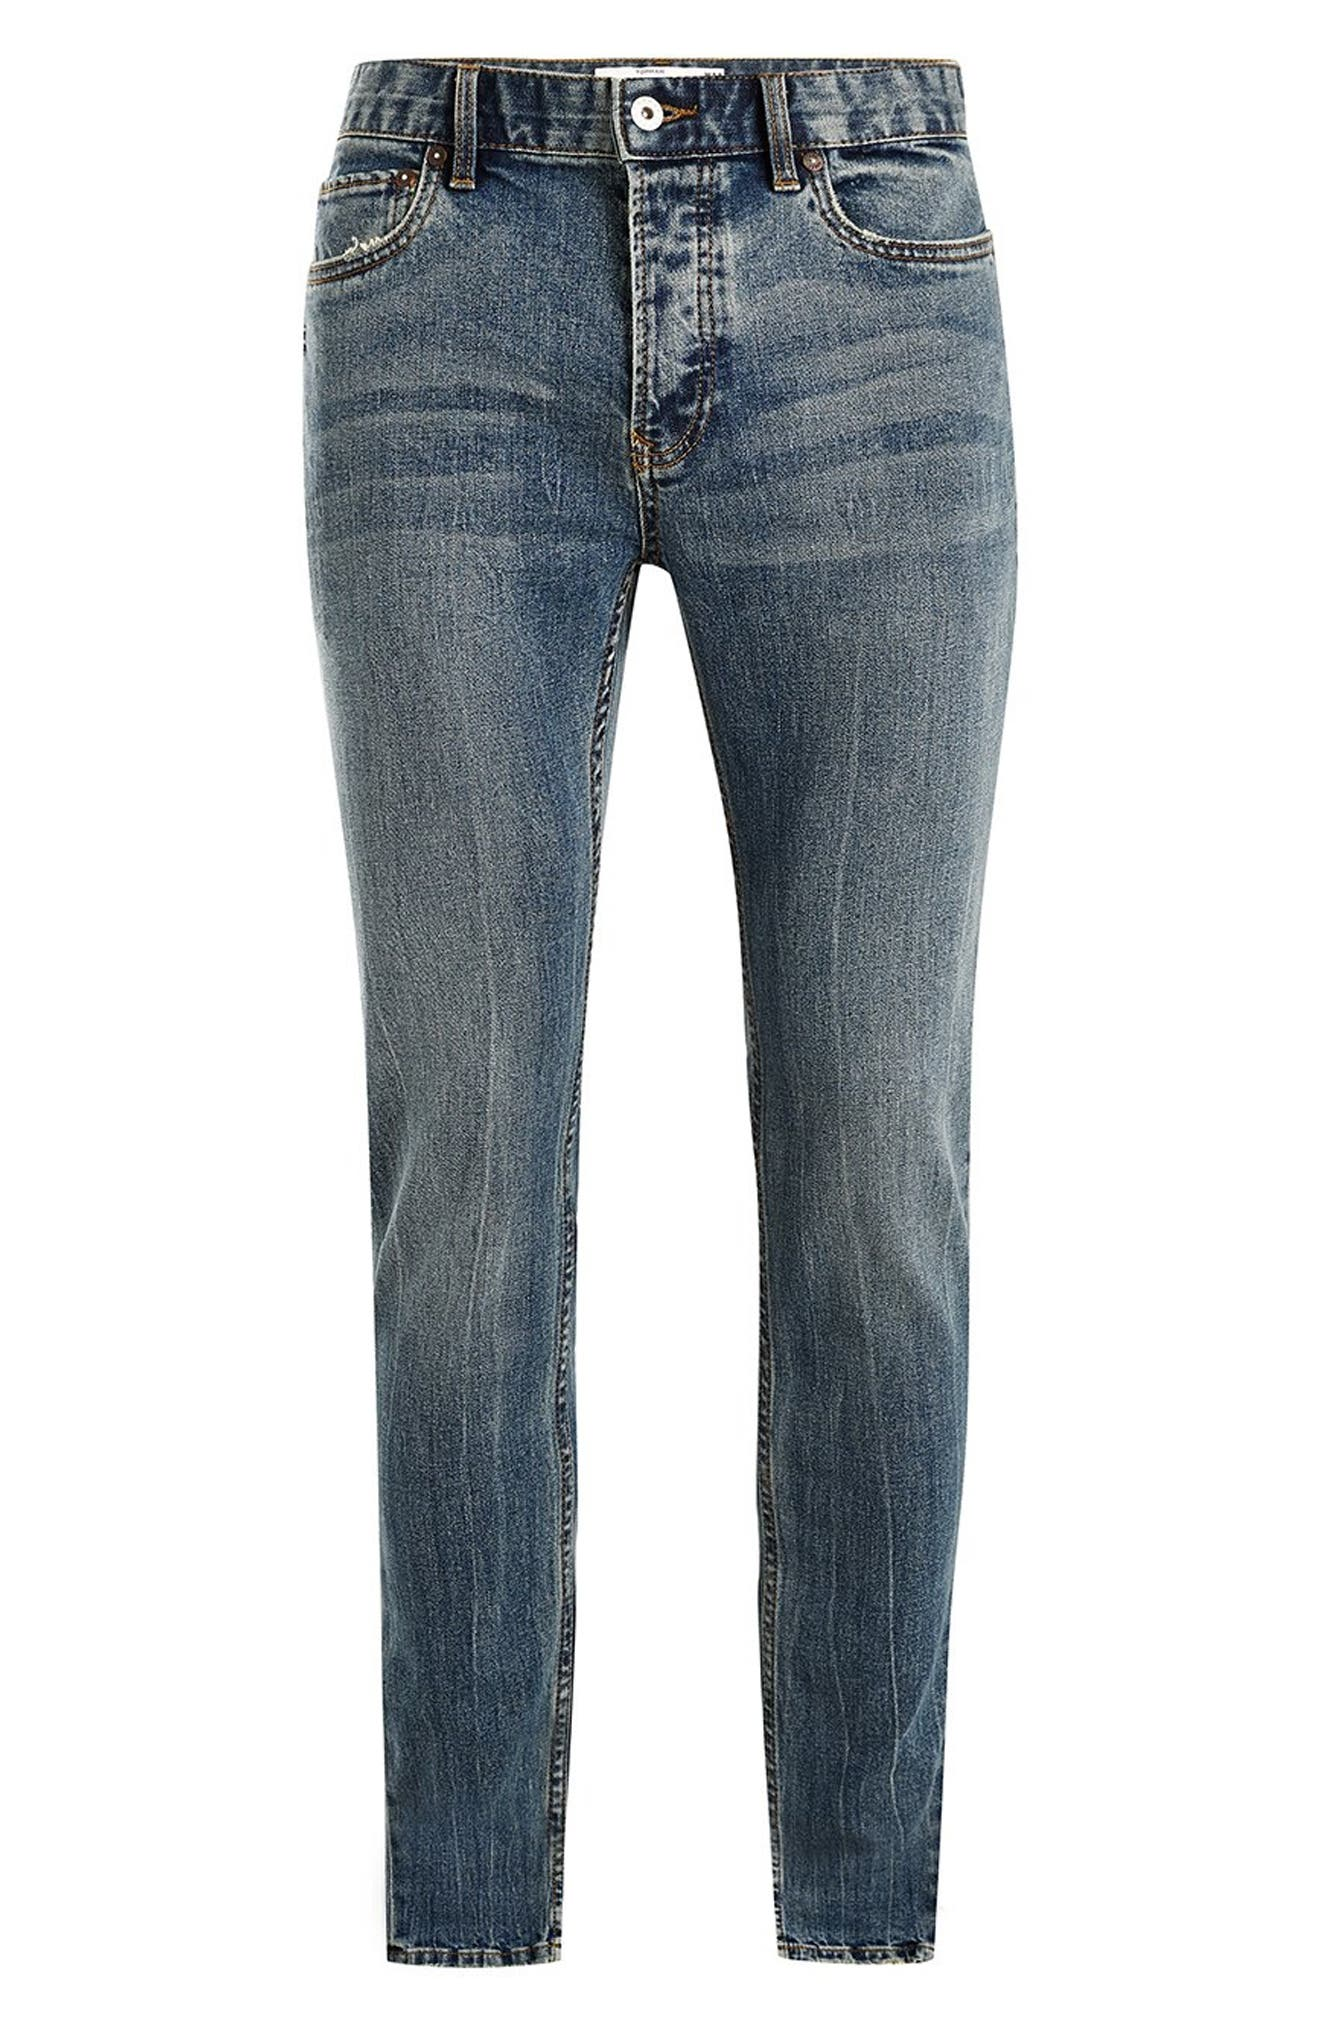 Stretch Skinny Fit Jeans,                             Alternate thumbnail 4, color,                             BLUE